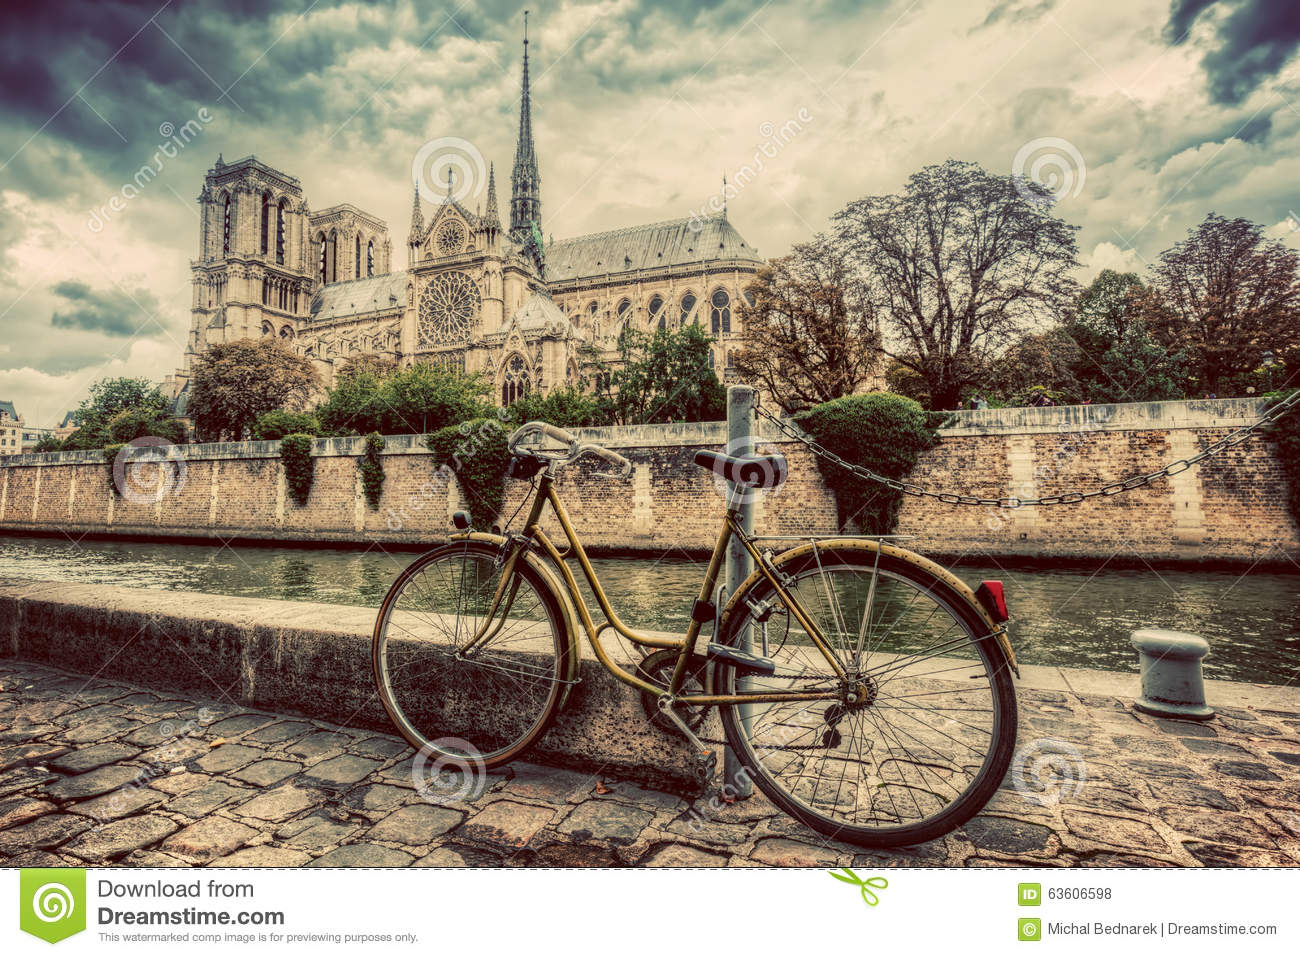 Retro bike next to notre dame cathedral in paris france - Retro vintage ...